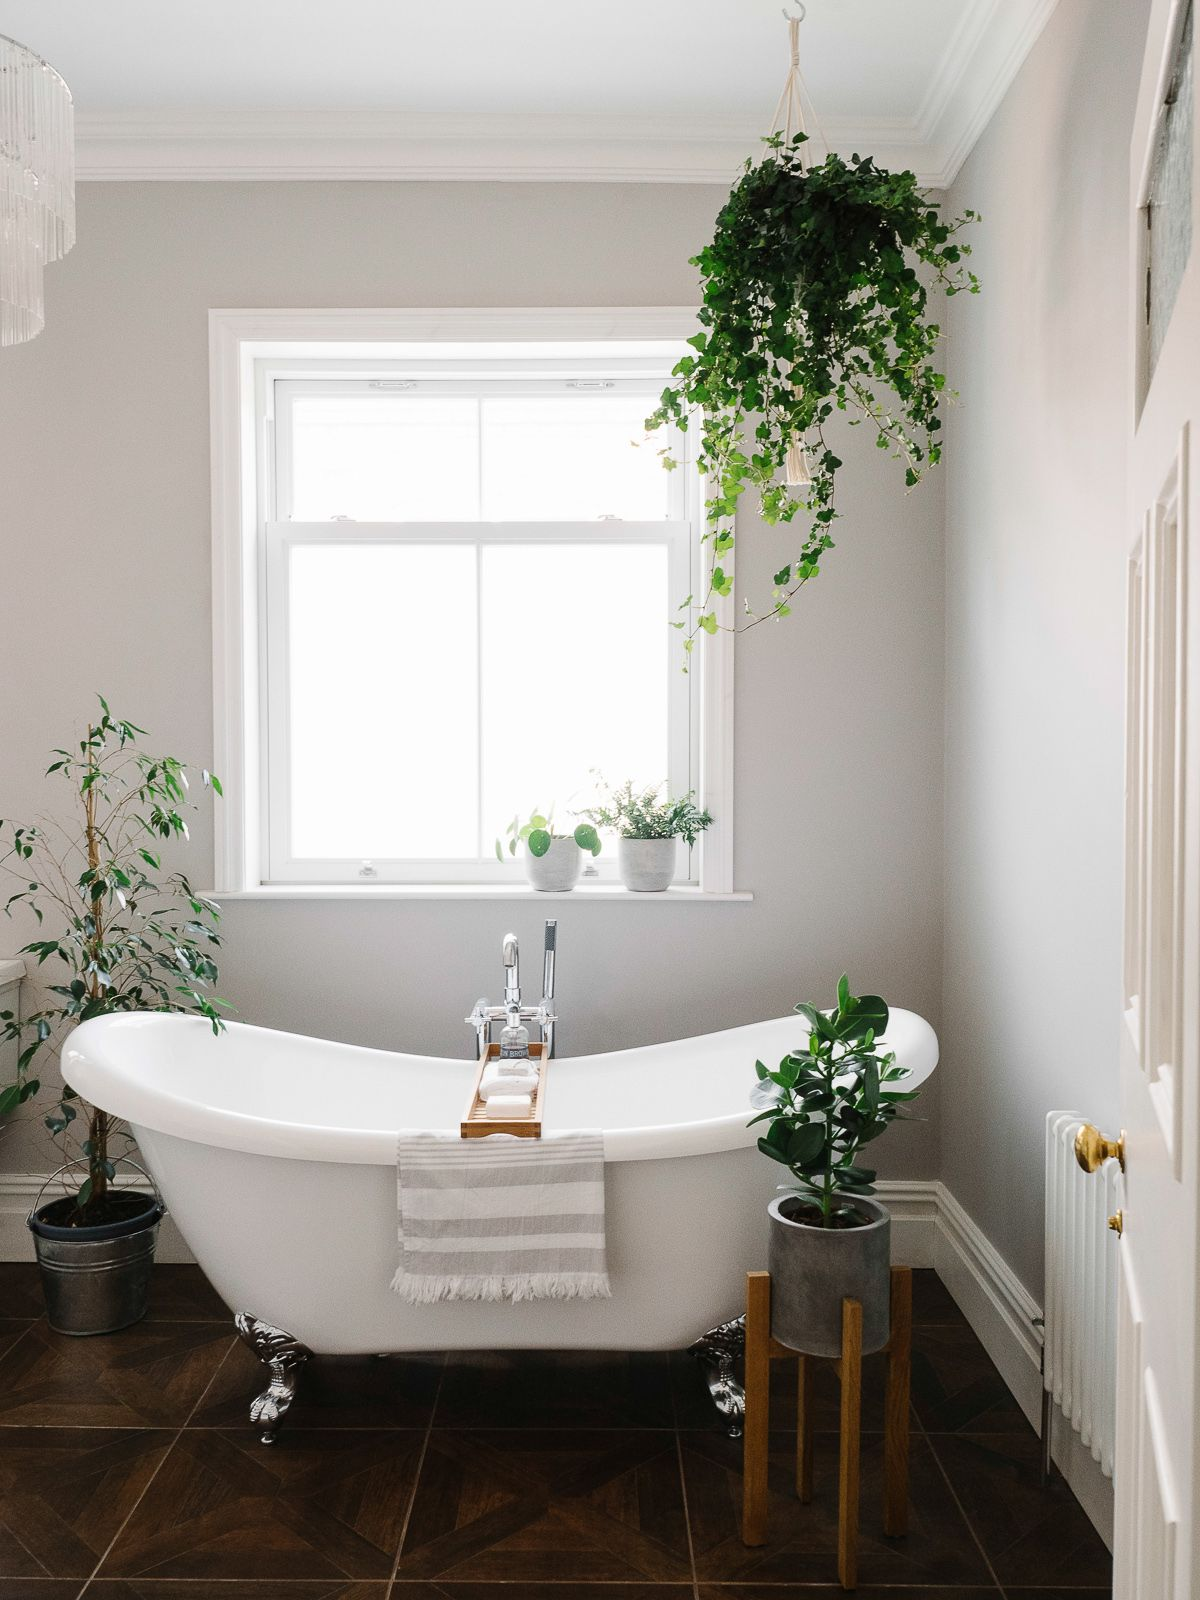 5 ways to achieve the hotel bathroom look in your own home ...